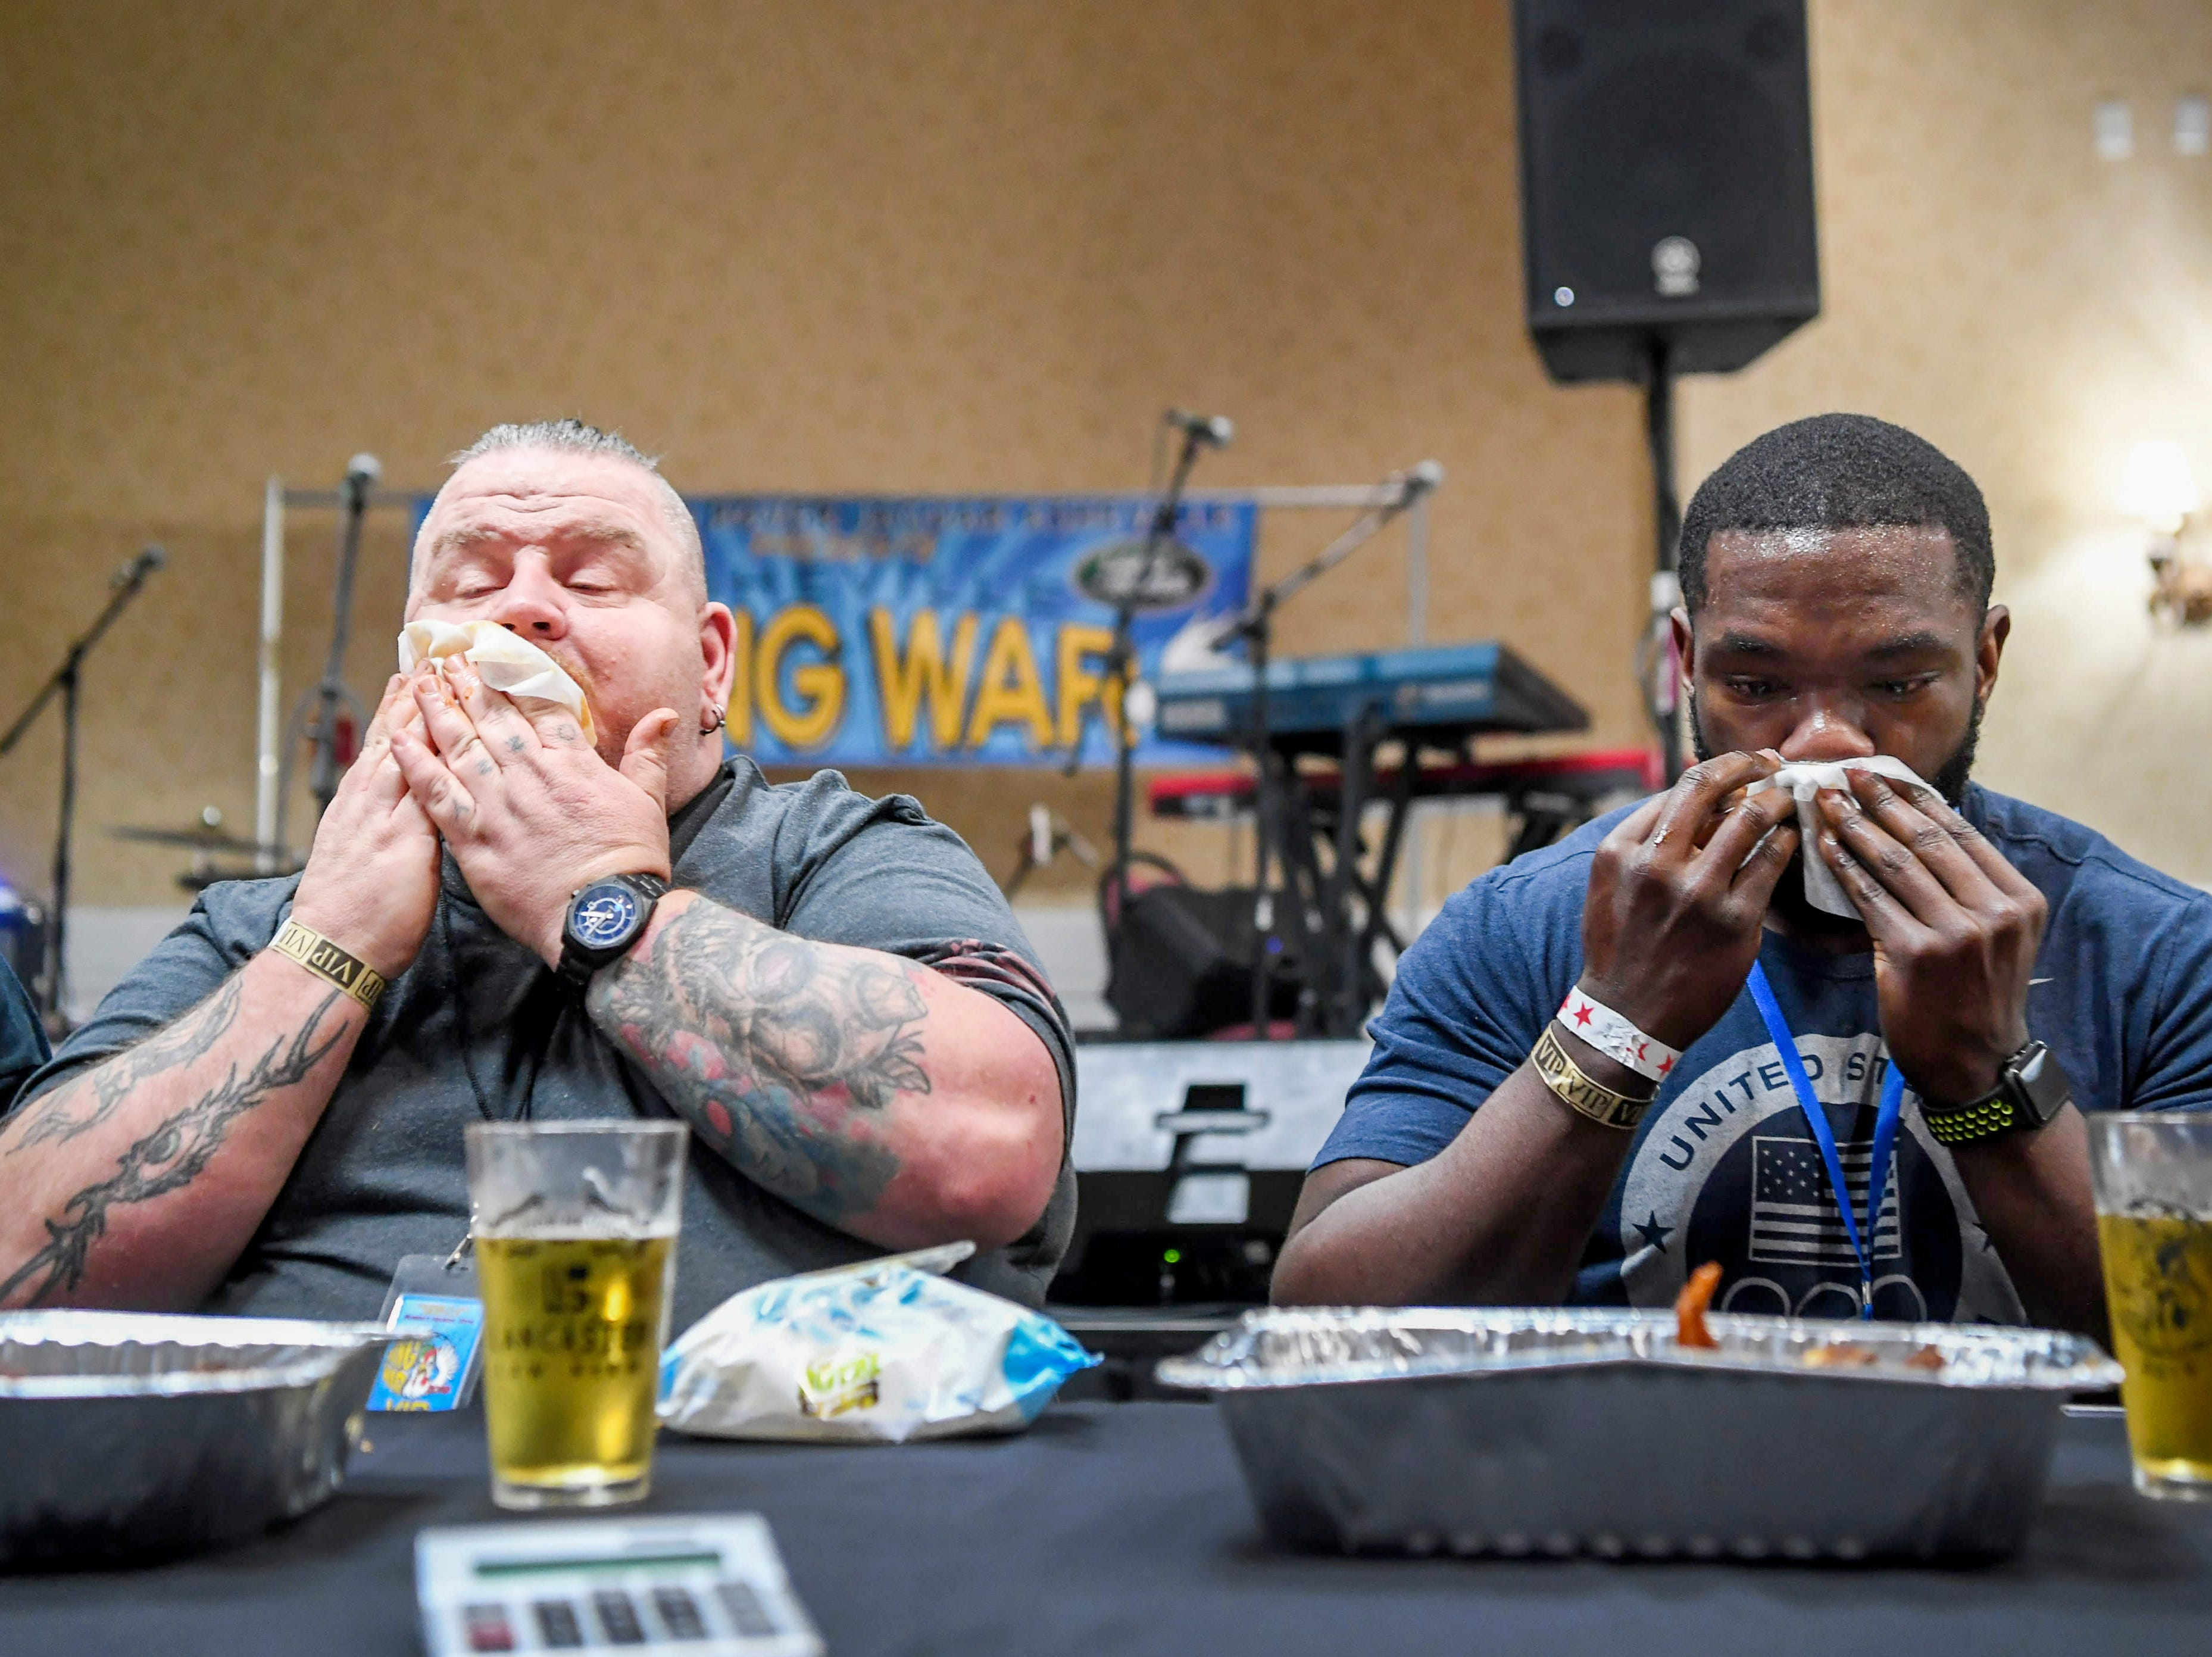 Roy Tesner, left, of Mars Hill, and Lamarcus Thicklin, of Asheville, wipe their faces as totals are counted following the King of the Wing hot wing eating contest sponsored by Firewalker Hot Sauce during the 8th annual Asheville Wing War at the Crowne Plaza March 10, 2019 in Asheville. Thicklin was later announced the winner.